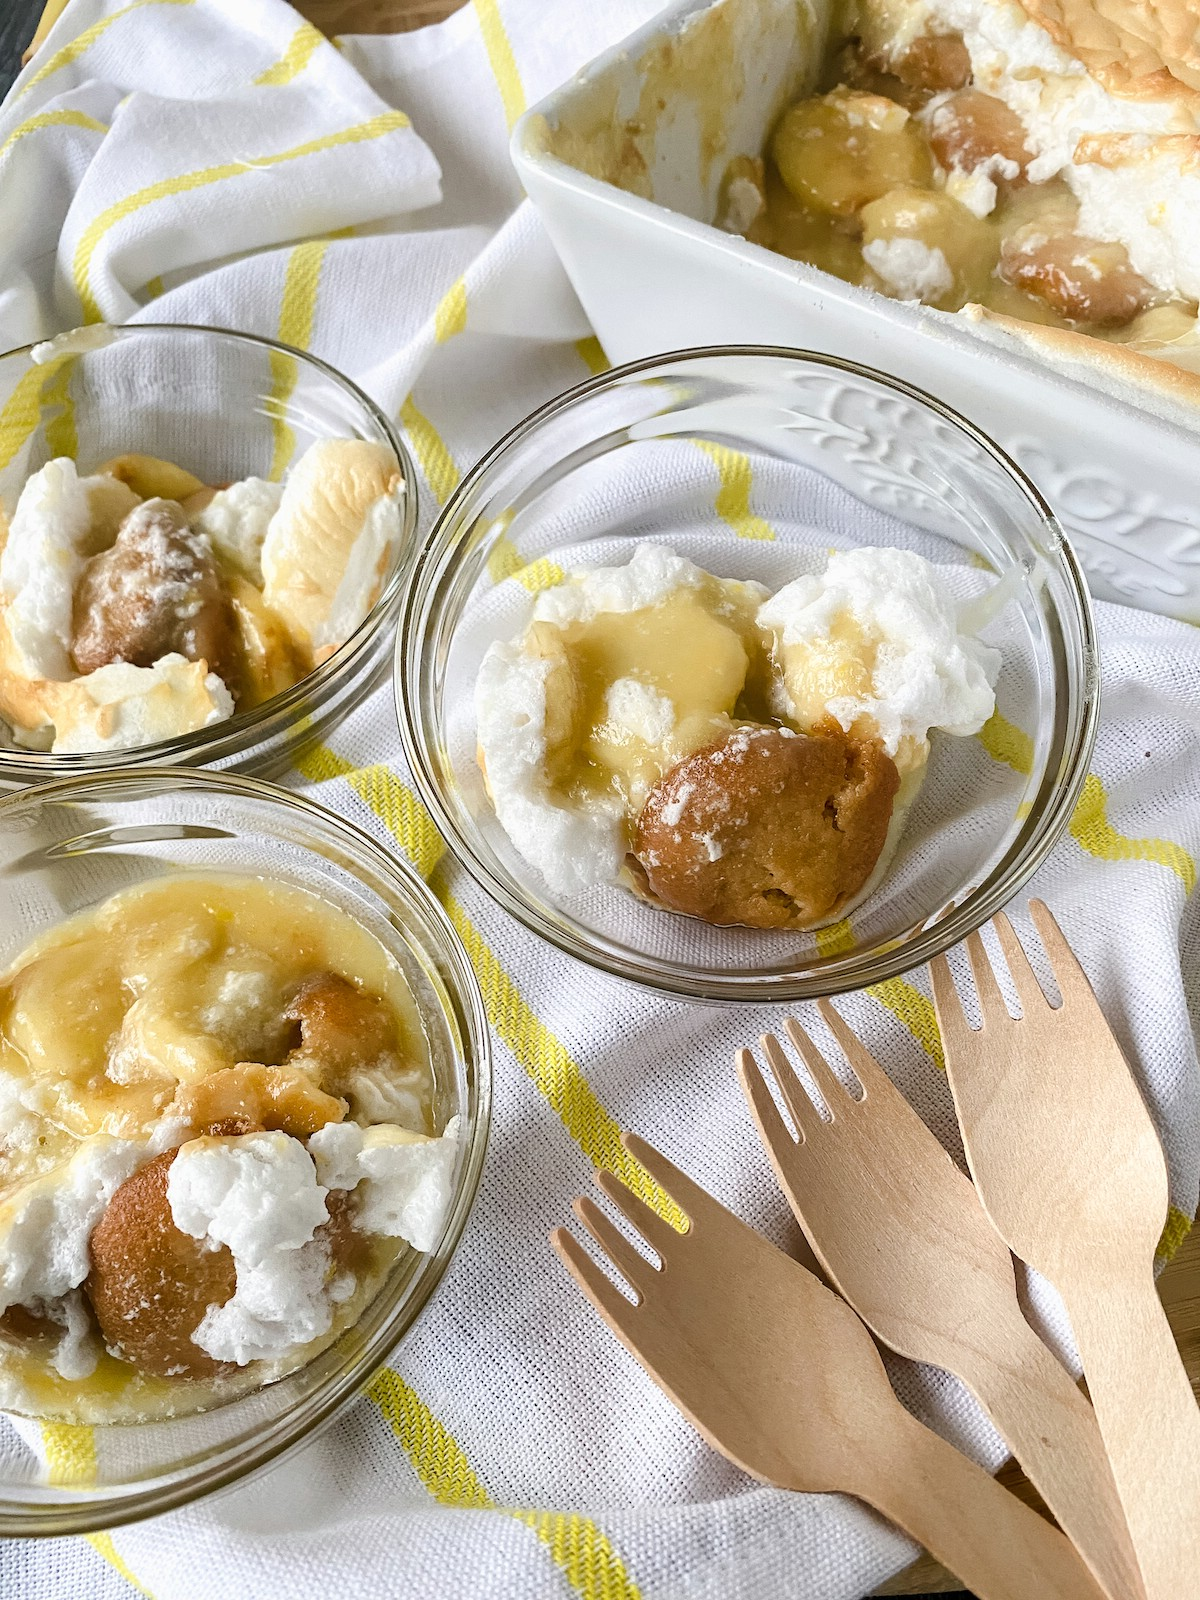 Overhead picture of banana pudding in glass bowls